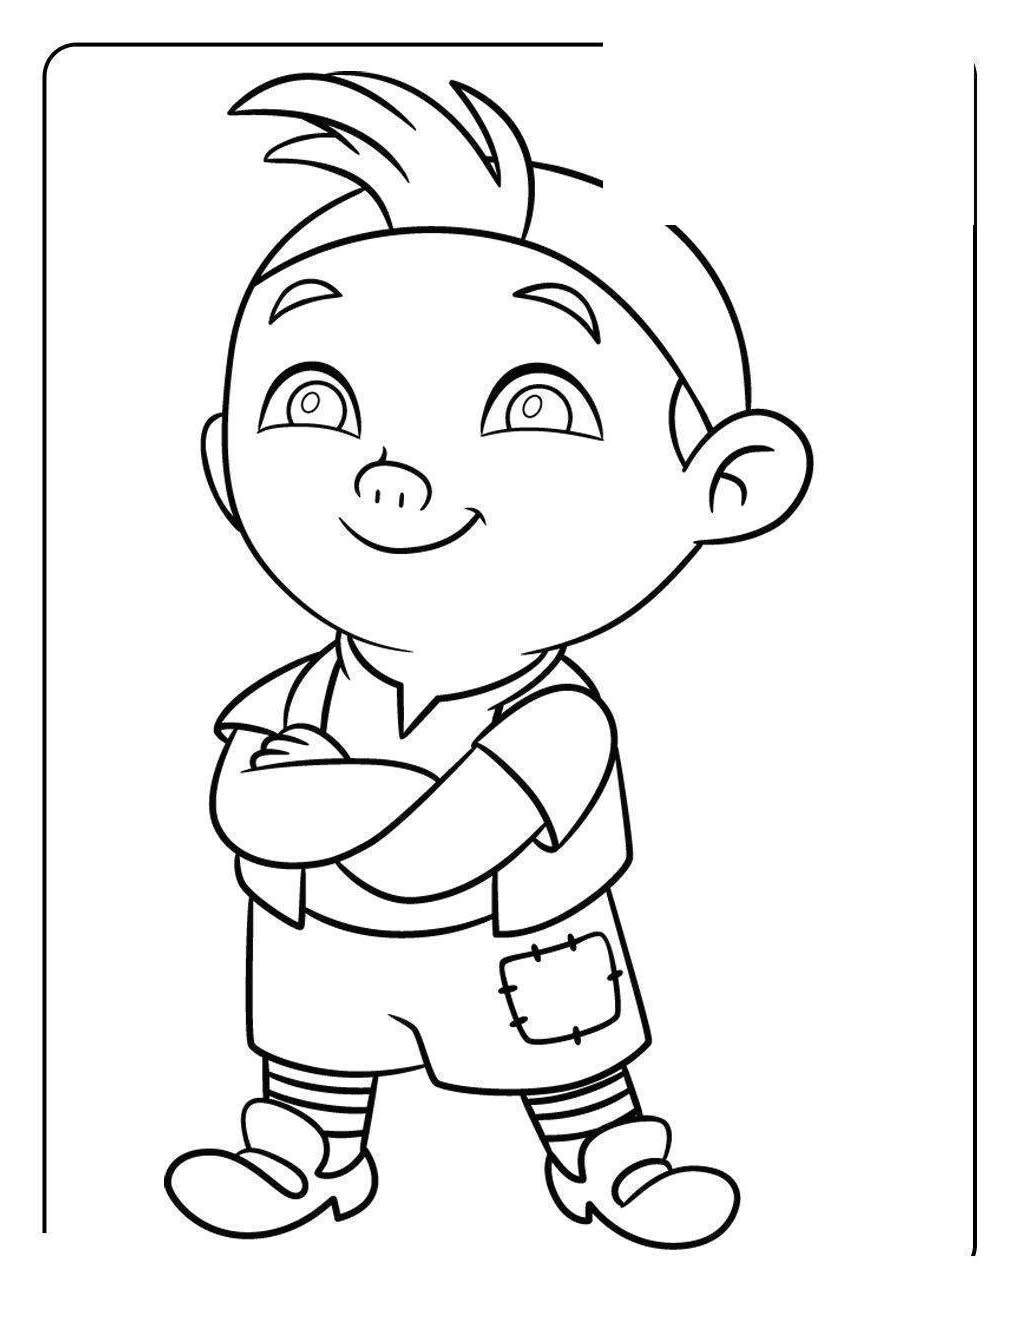 Jake And The Neverland Pirates Coloring Pages Never Land Online